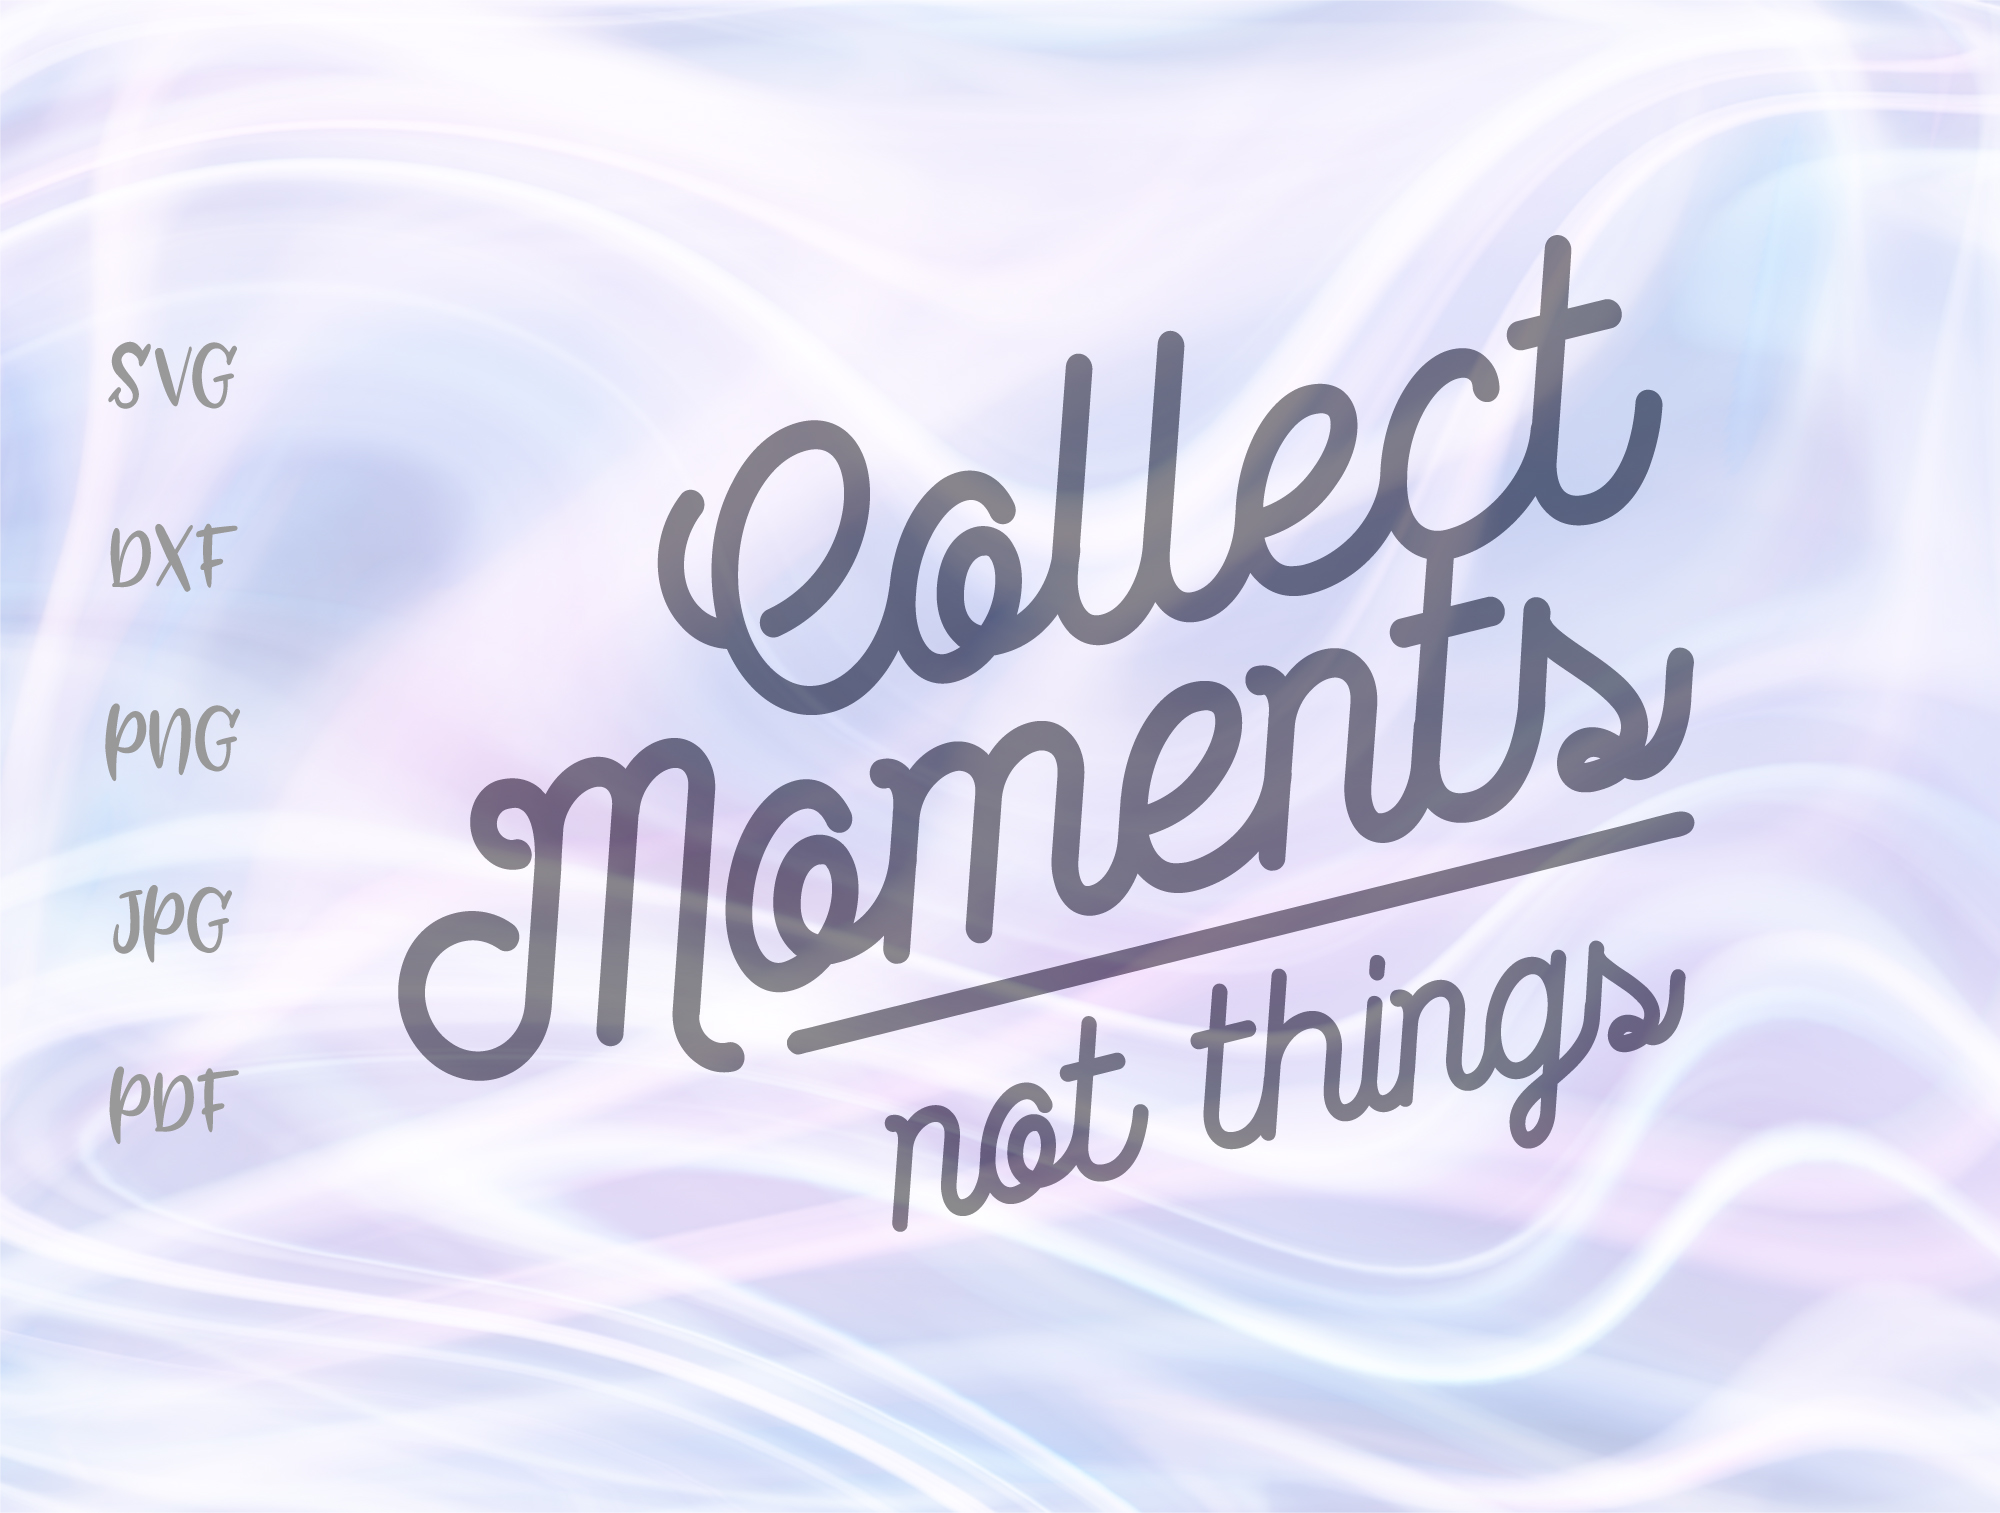 Download Free Collect Moments Not Things Graphic By Digitals By Hanna for Cricut Explore, Silhouette and other cutting machines.